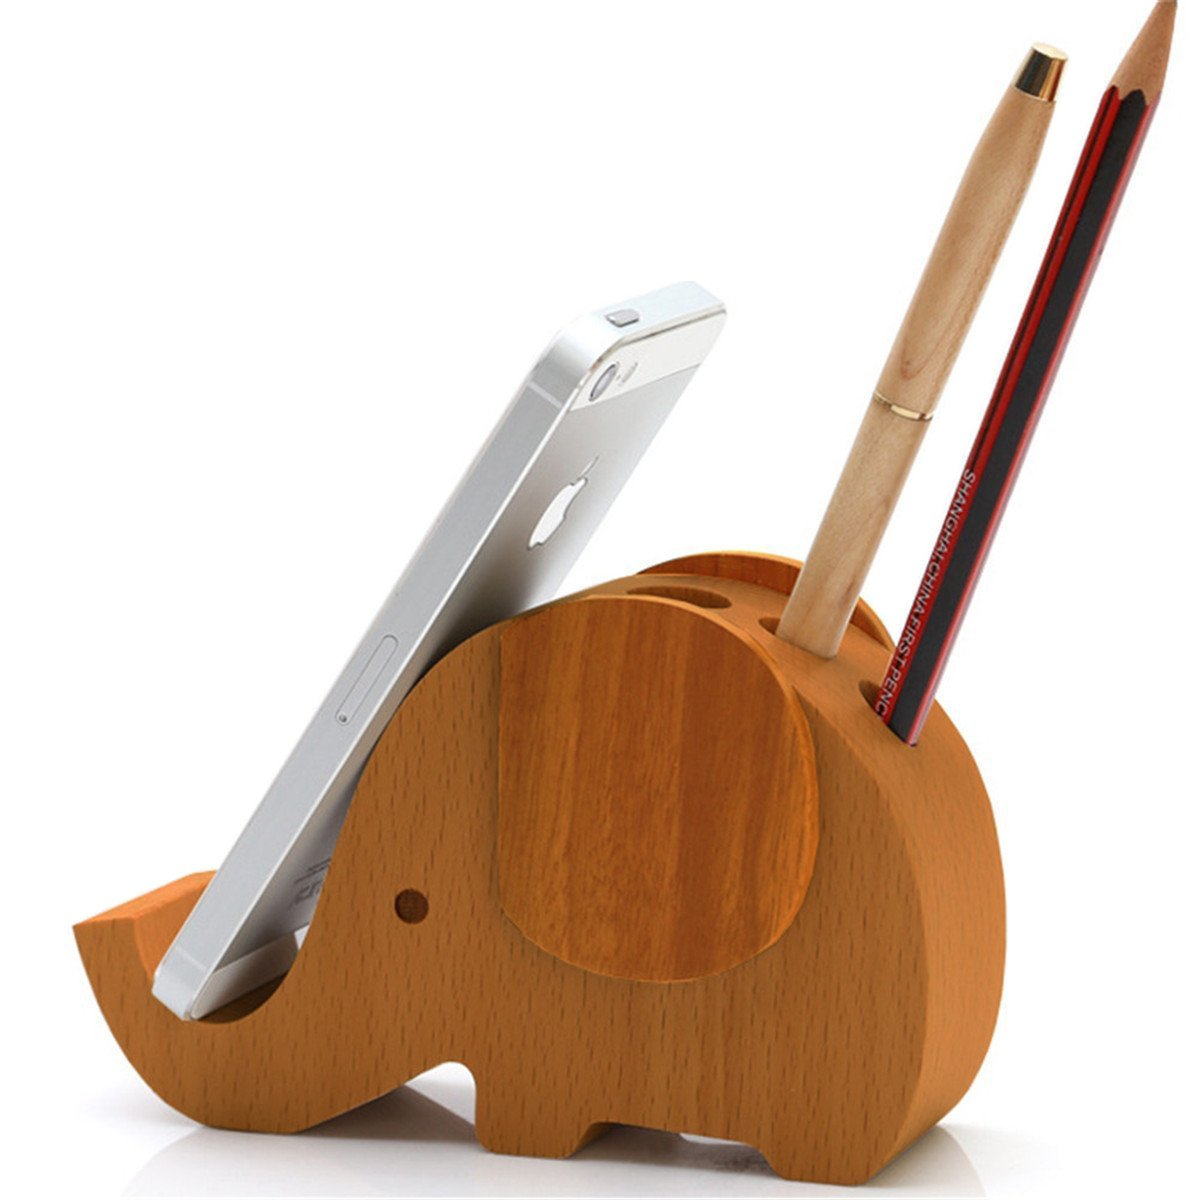 APSOONSELL Wood Elephant Phone Holder & Cute Desktop Card, Note Pad, Pencil Organizer by APSOONSELL (Image #1)